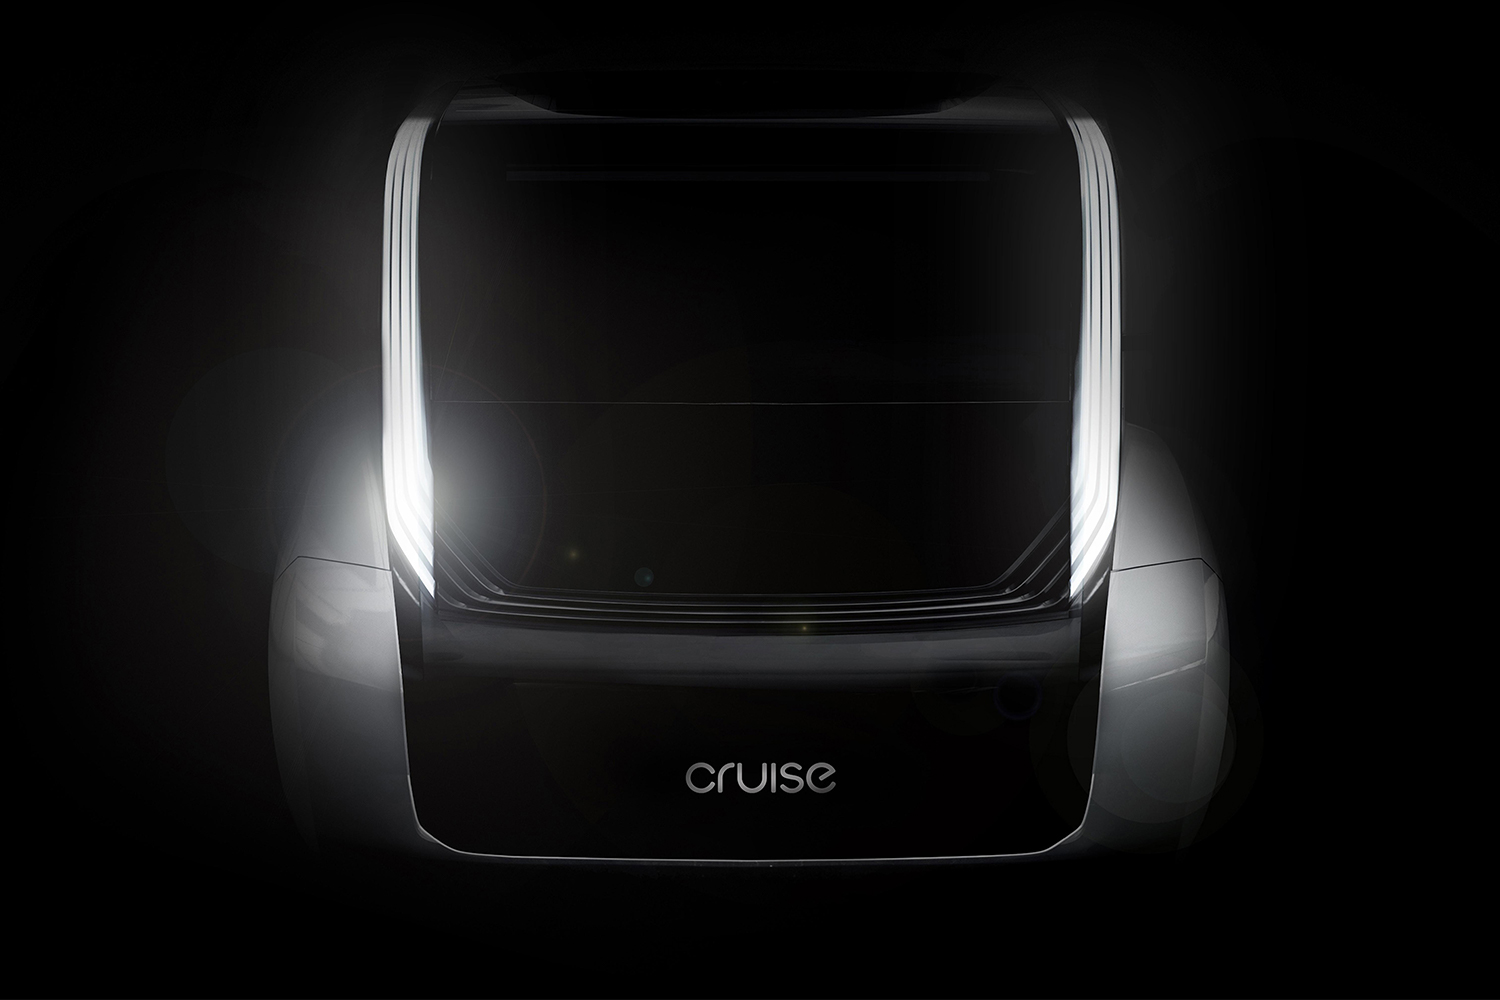 Cruise Autonomous Vehicle From General Motors